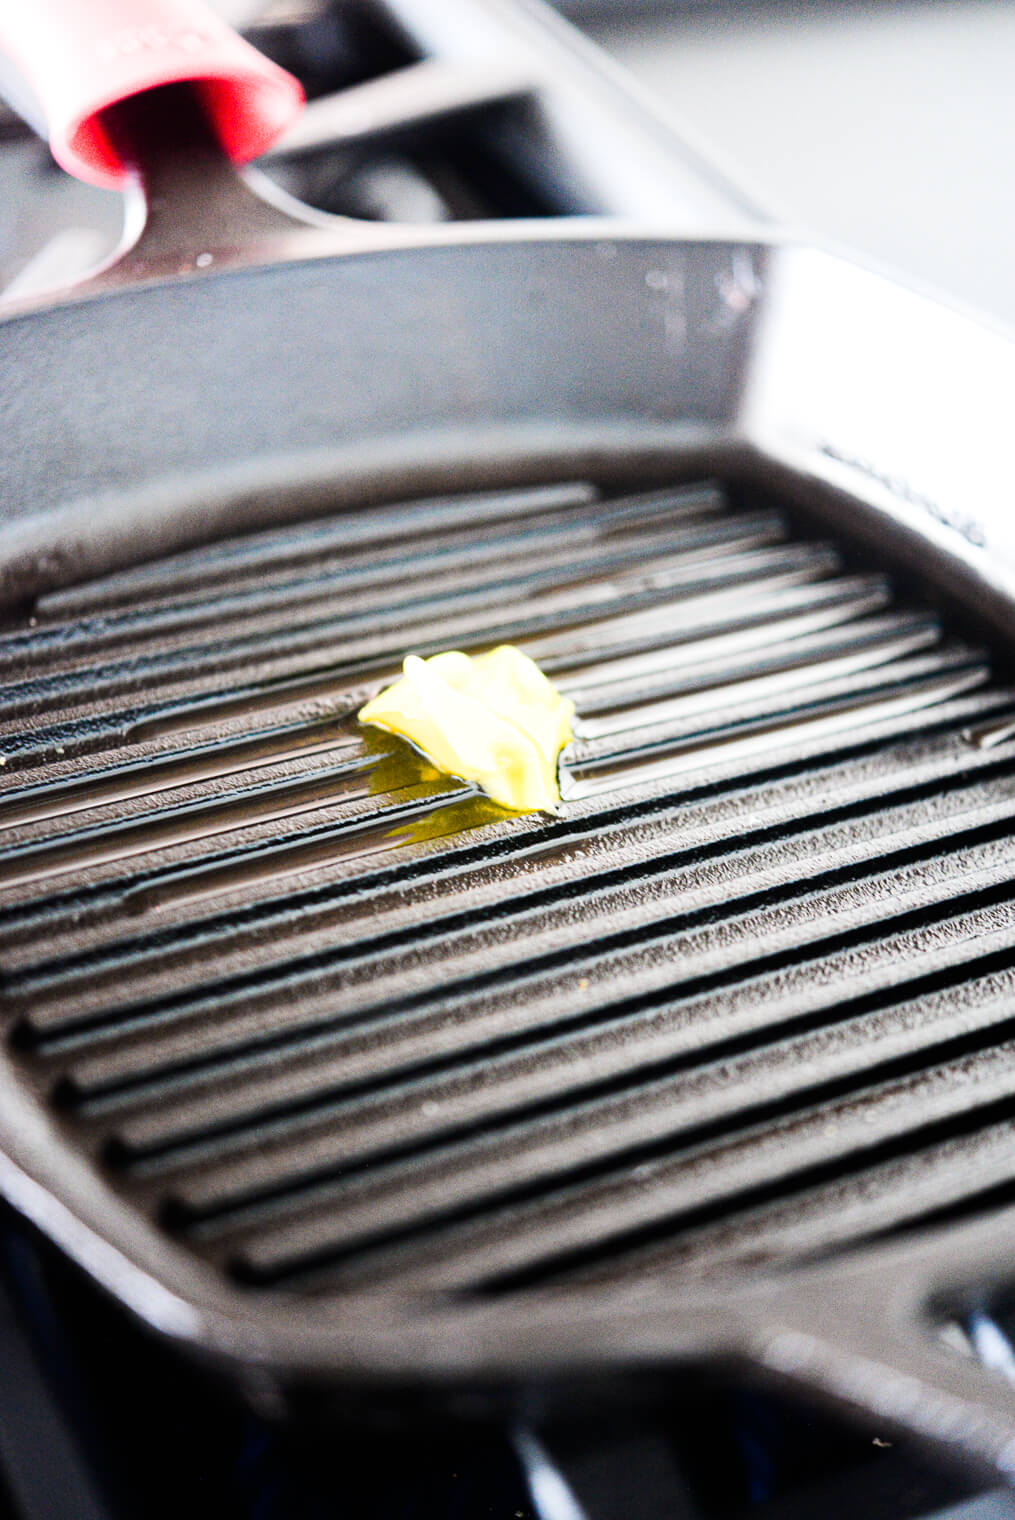 a grill pan skillet with butter in it starting to melt